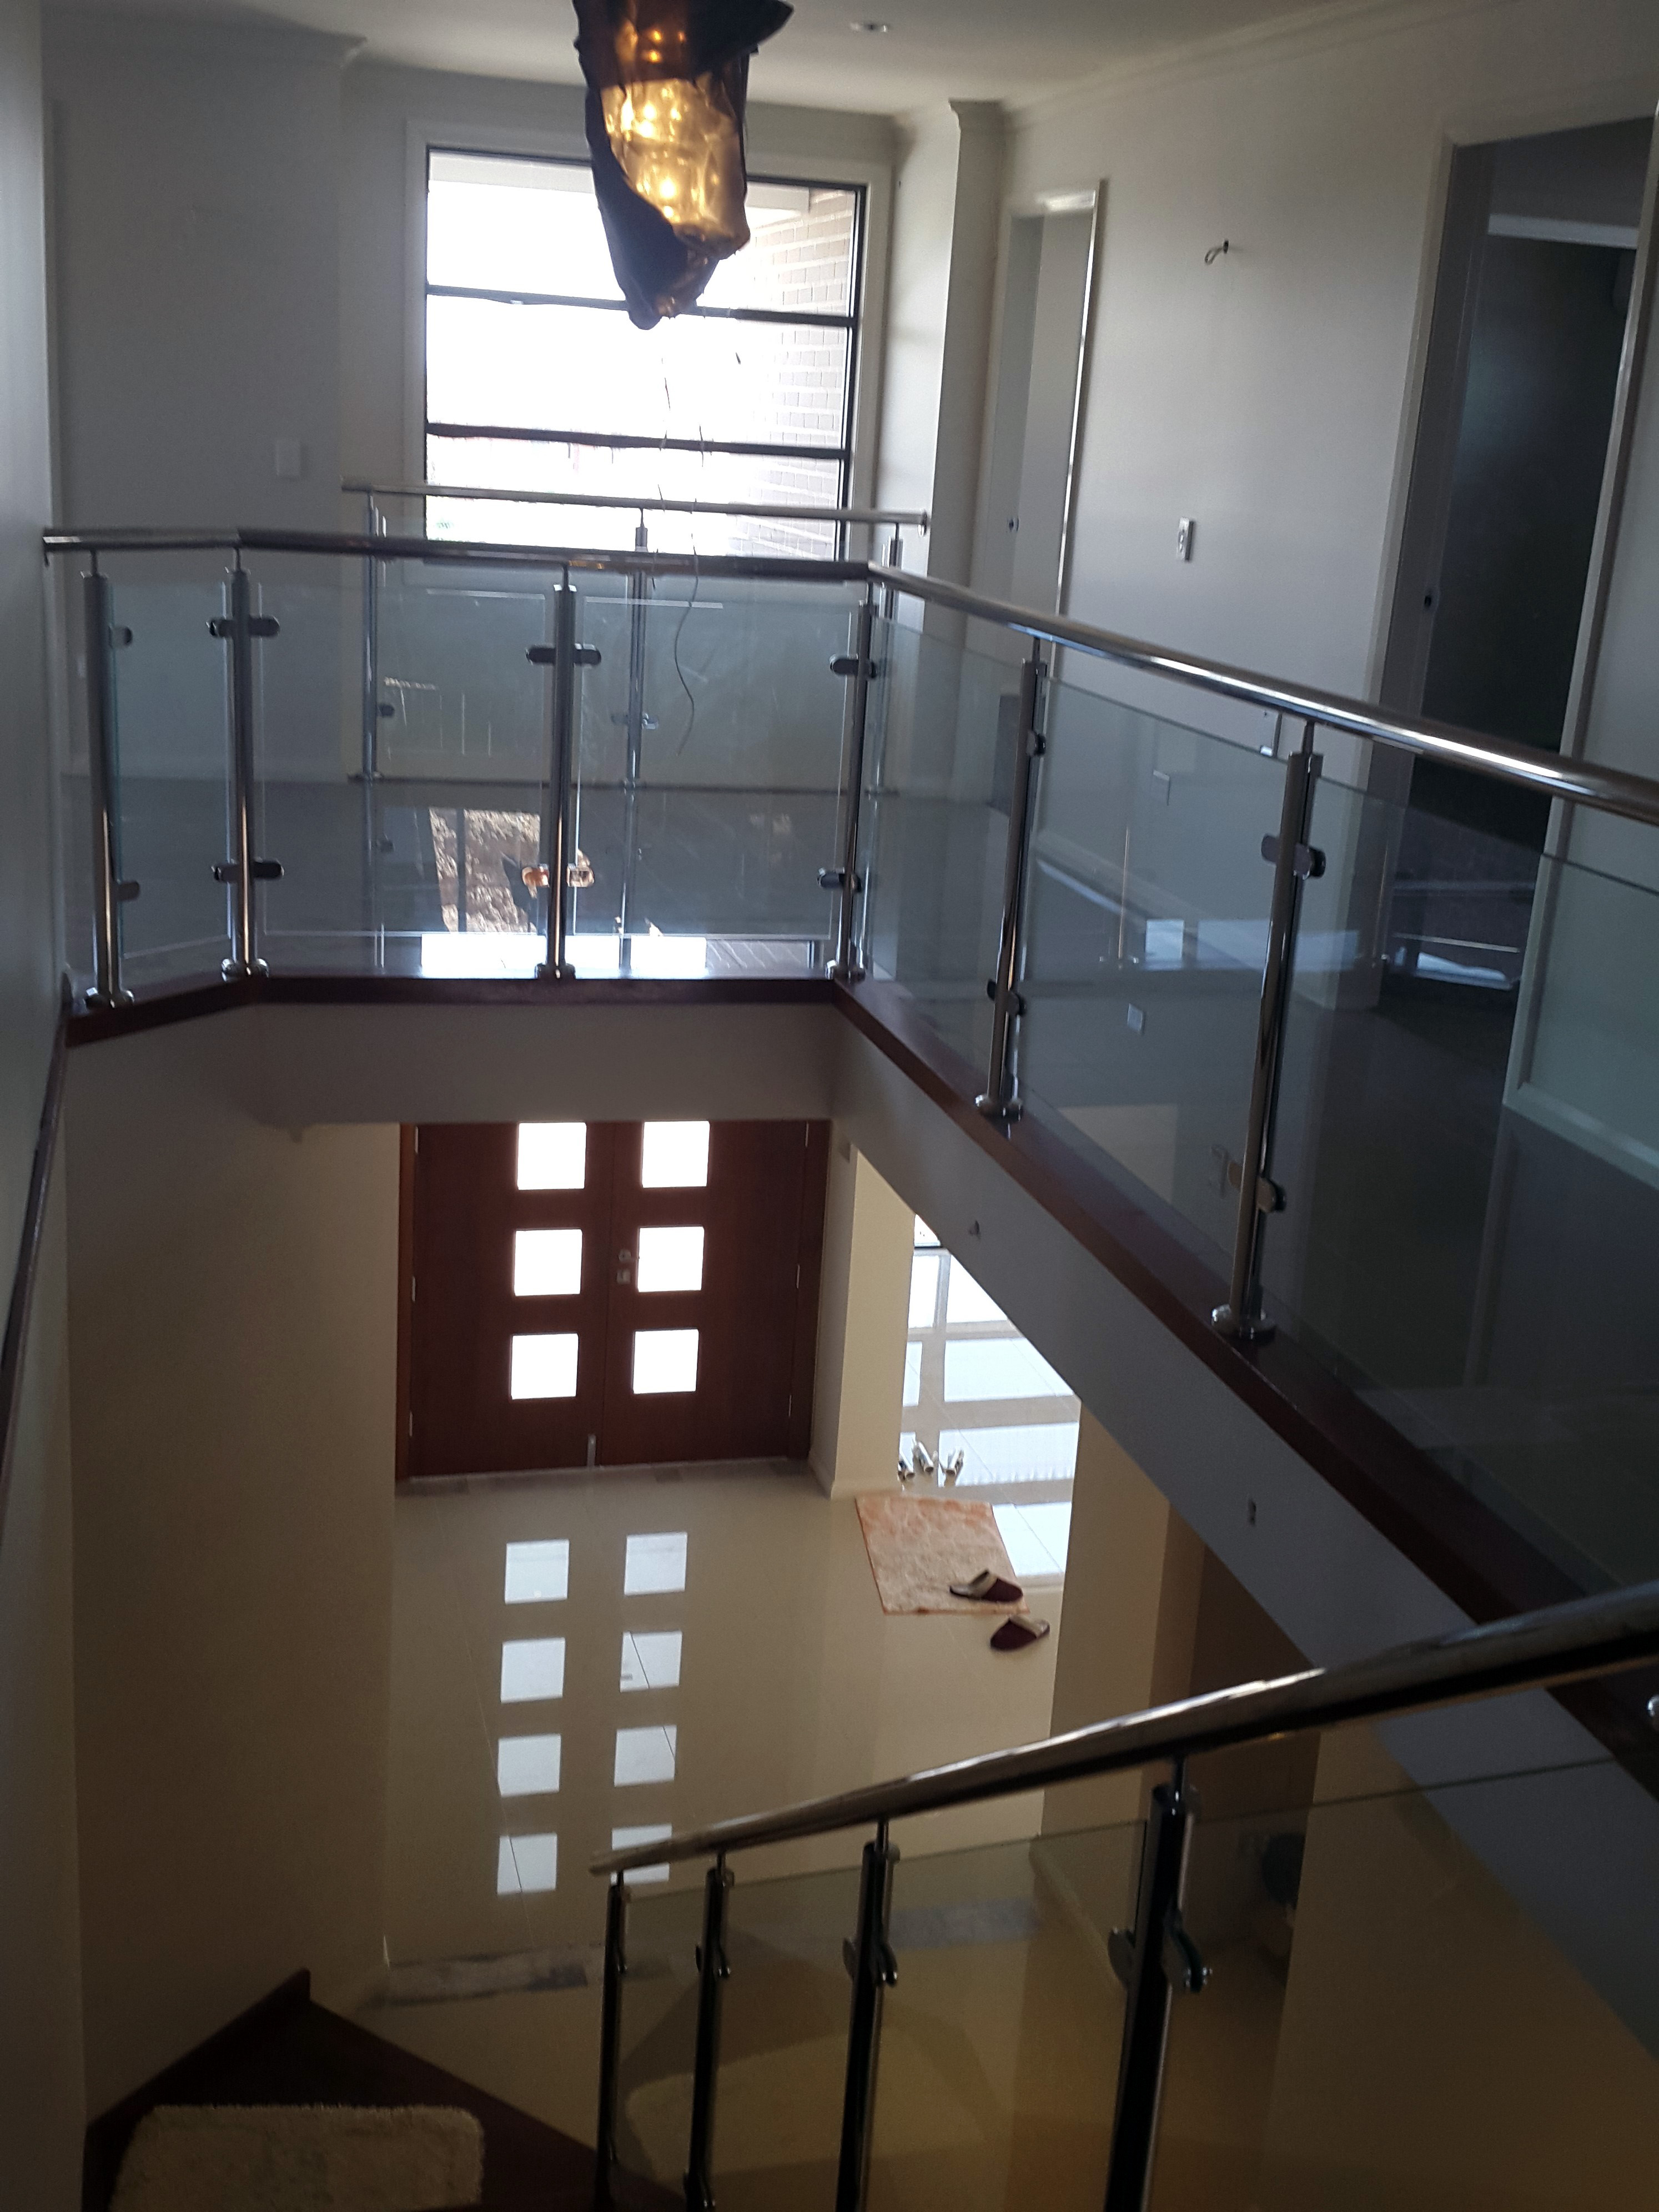 Upstairs View